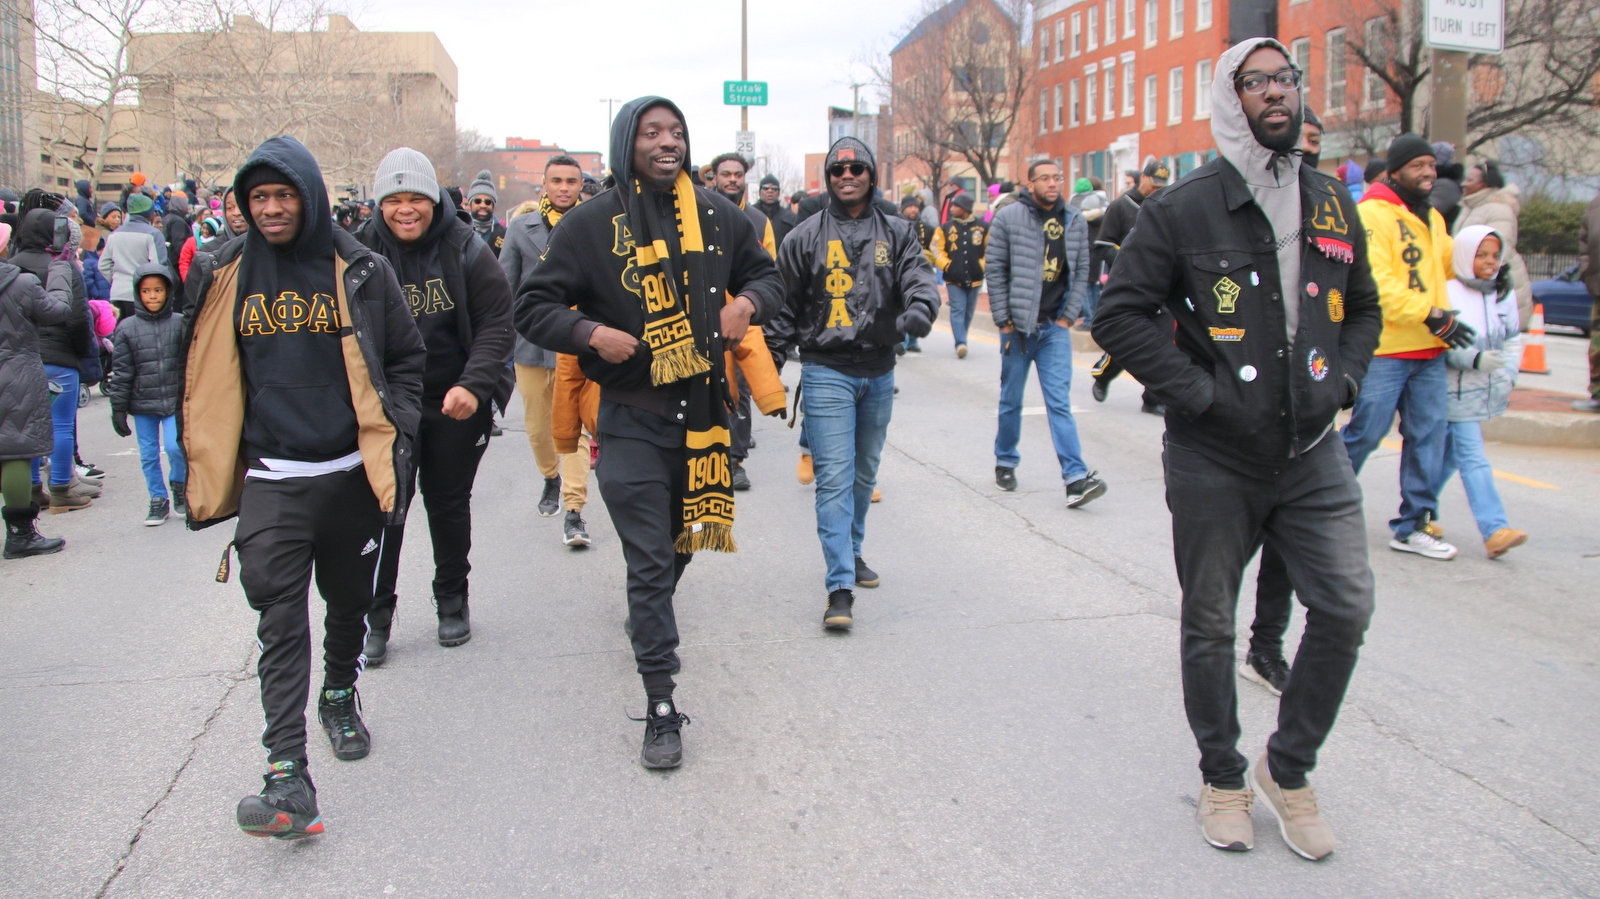 The brothers from Alpha Phi Alpha were out in force. (Fern Shen)